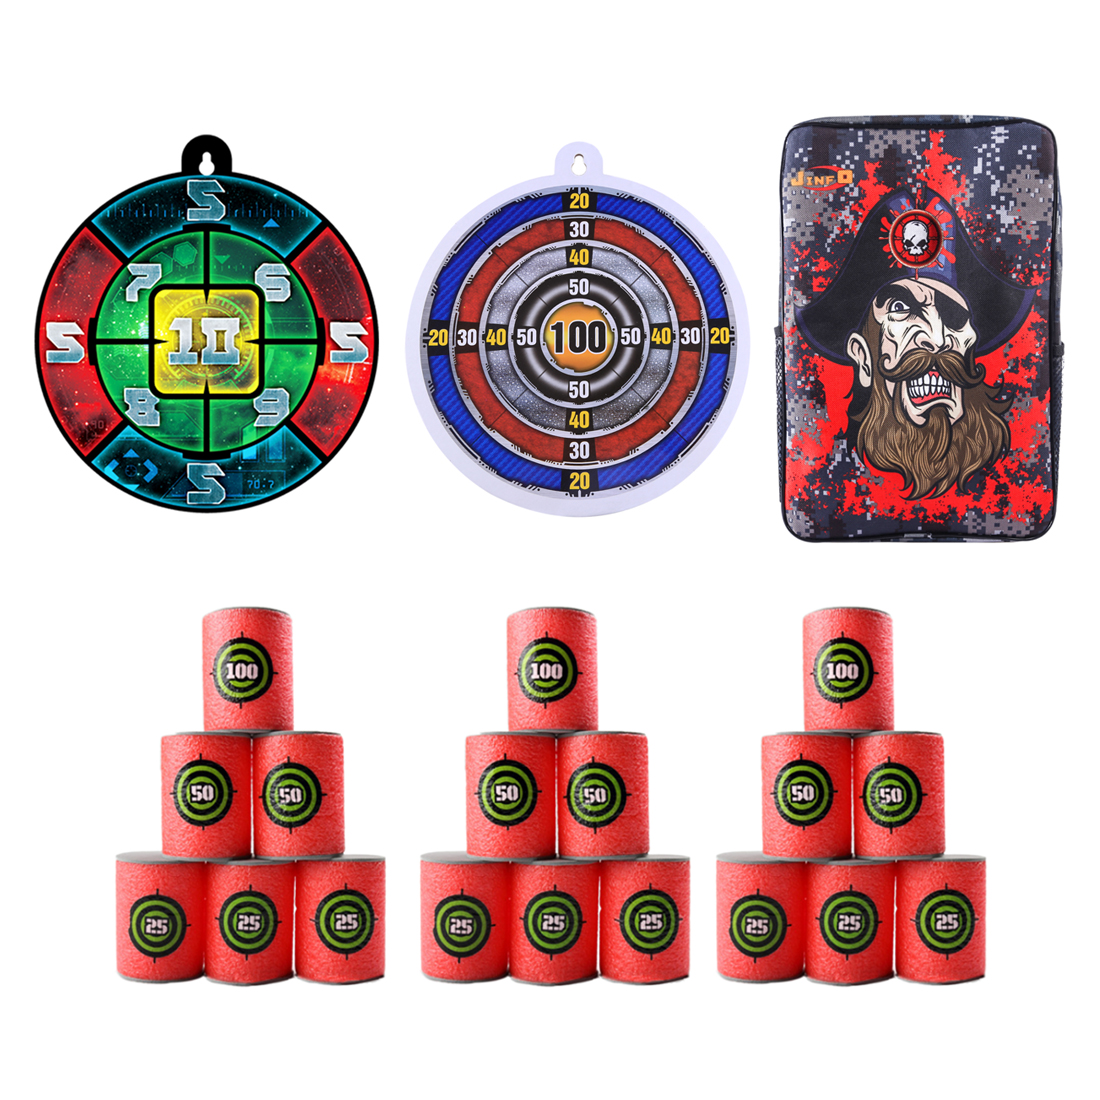 Mustache Pirate Pattern Tactical Target Bag Backpack Soft Bullet Transmitter Dart Board Target Set for Shooting Practice-in Paintball Accessories from Sports & Entertainment